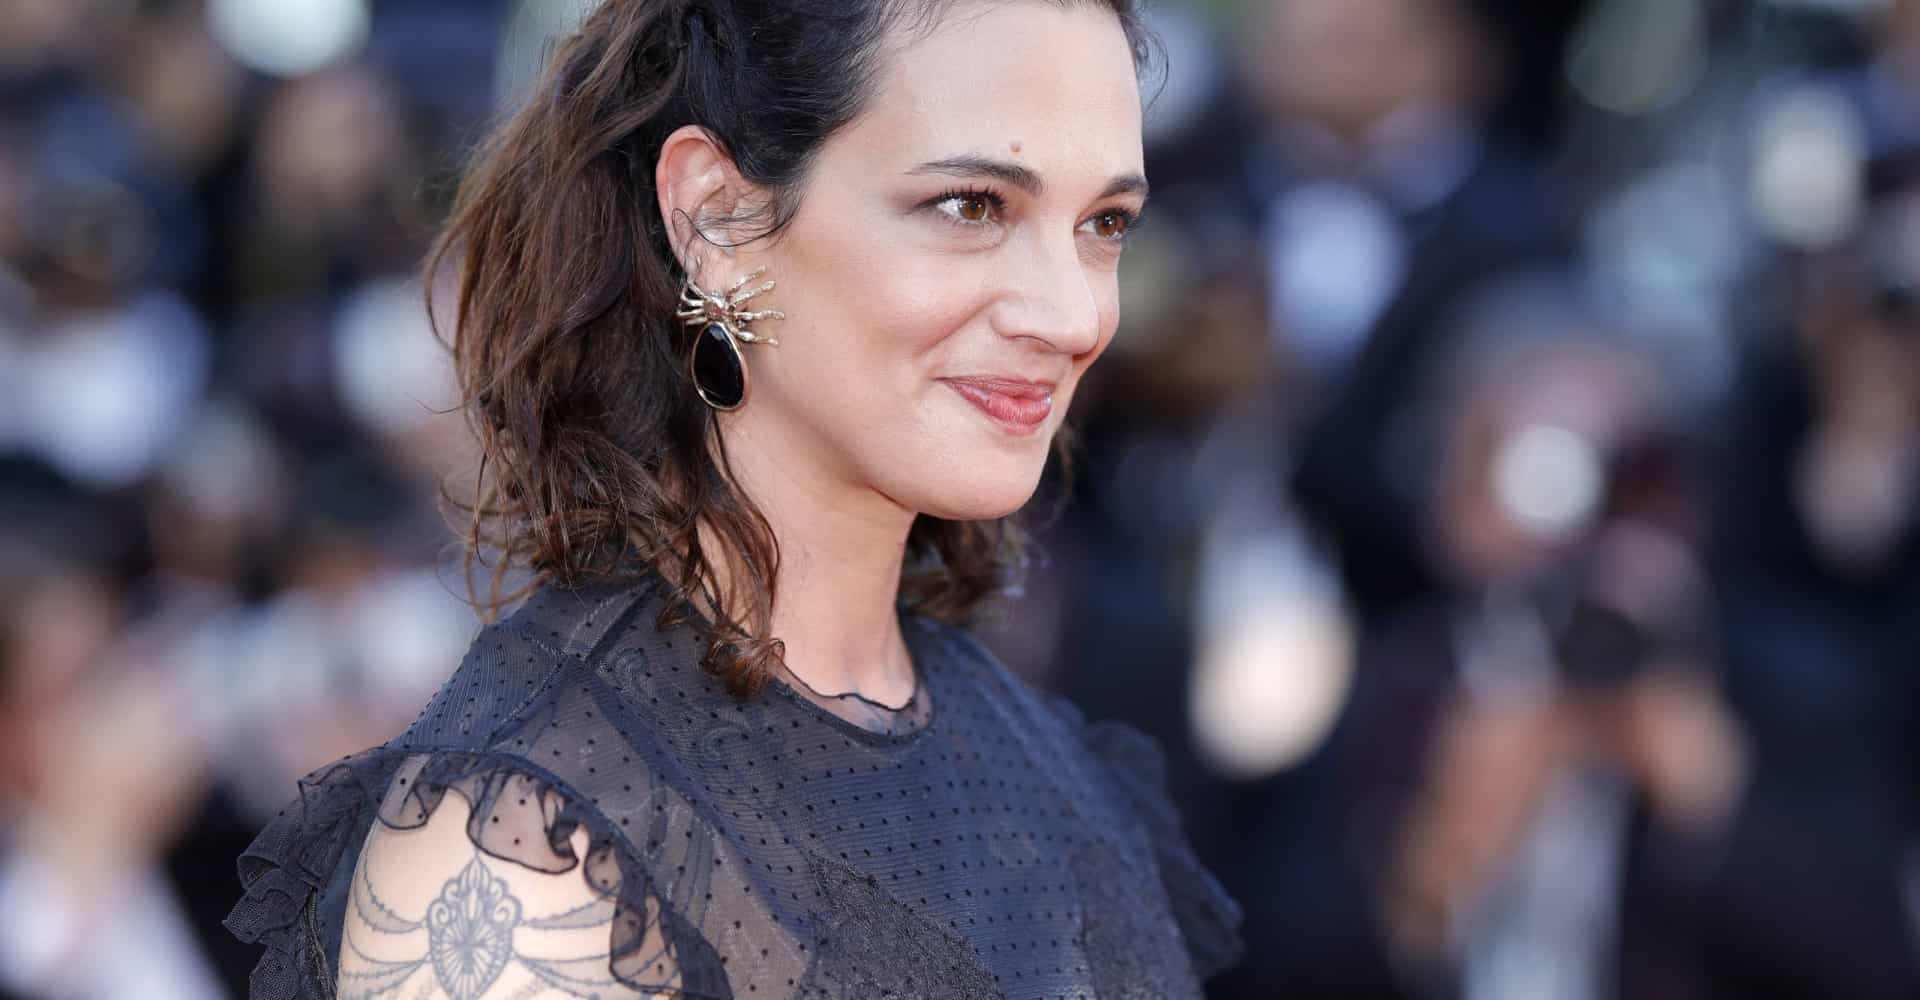 Asia Argento allegedly paid-off a male 17-year-old actor who accused her of sexual assault